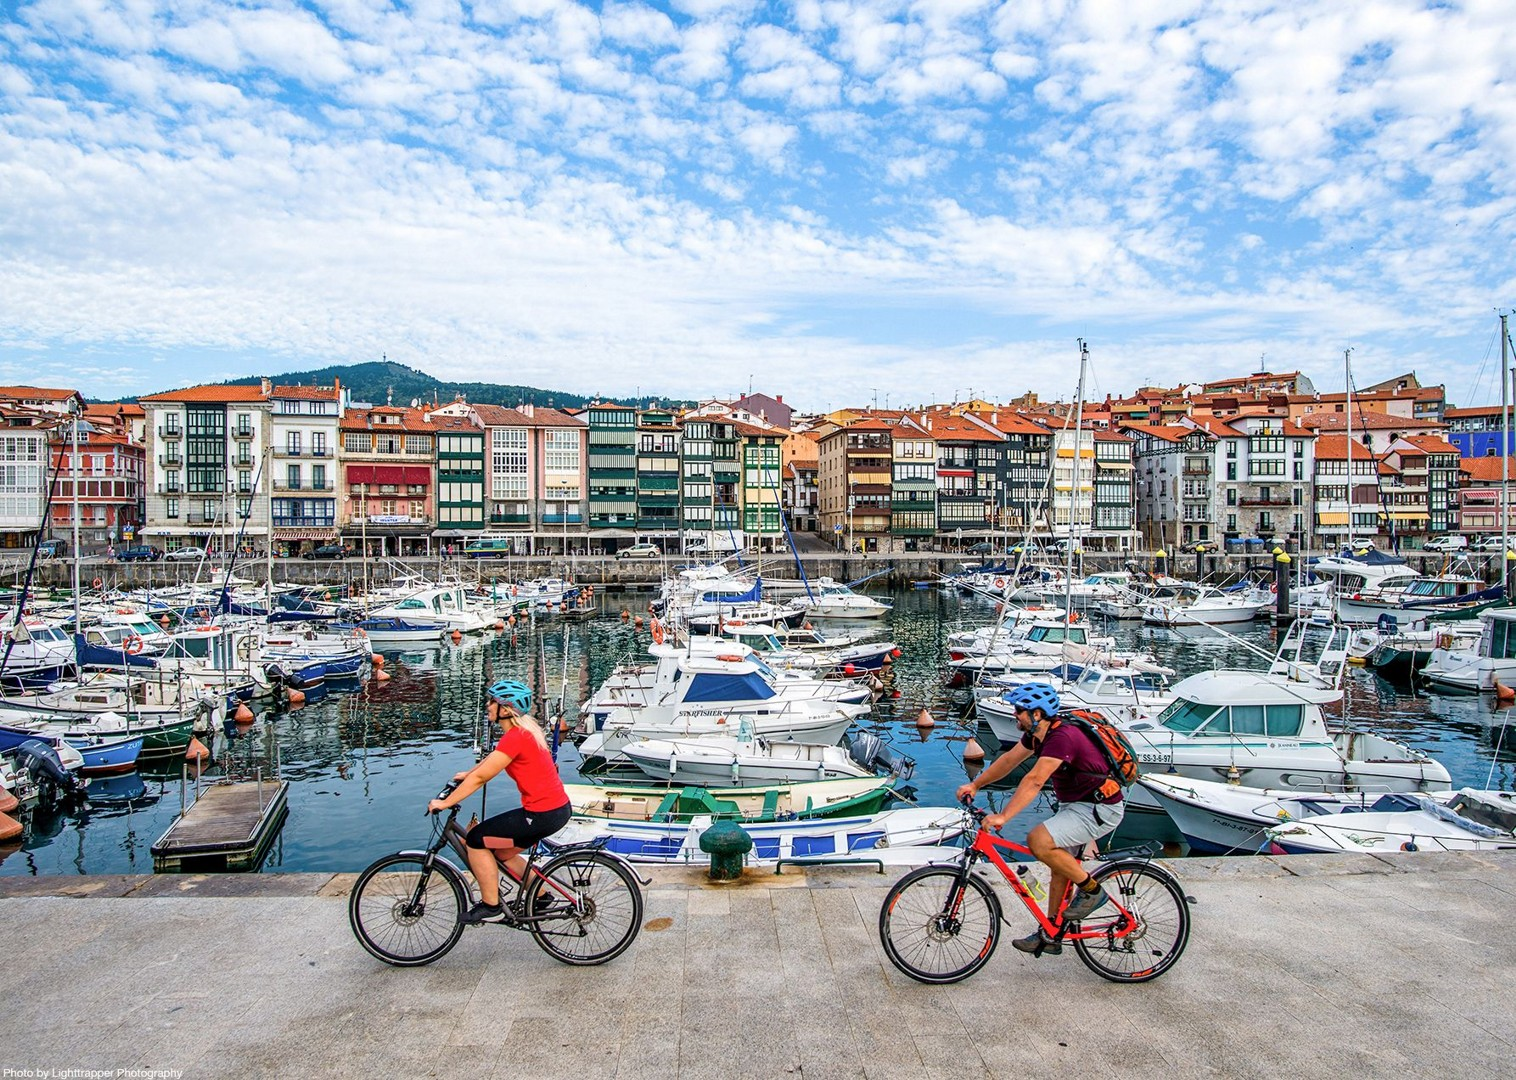 lekeitio-spain-cycling-self-guided-holiday-saddle-skedaddle.jpg - NEW! Spain - Bilbao to San Sebastian - Leisure Cycling